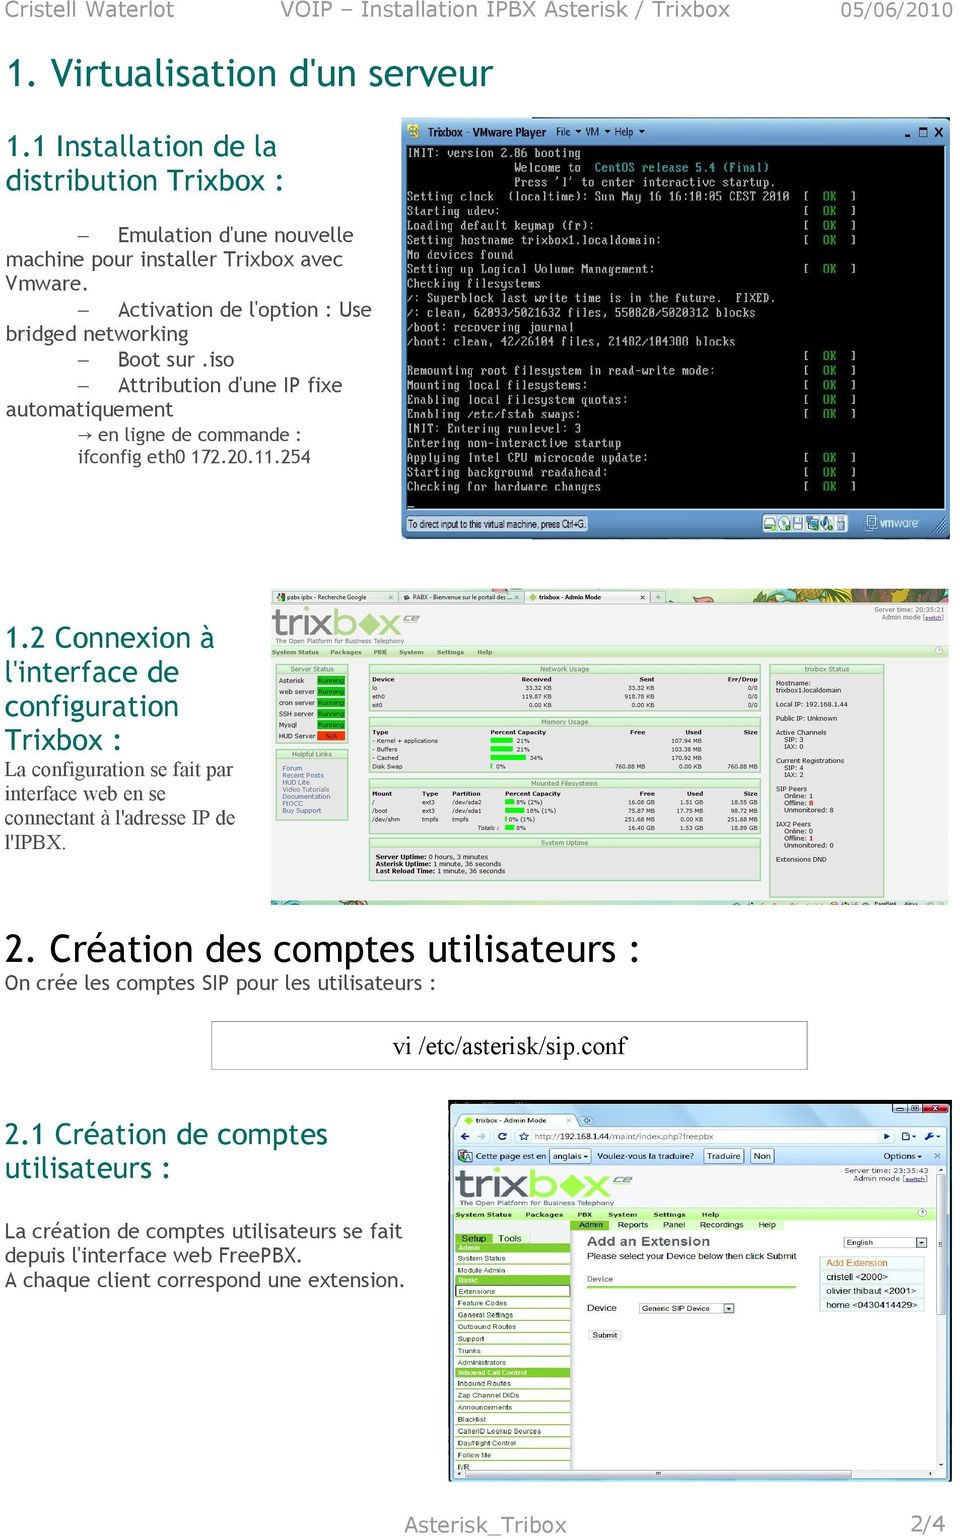 2 Connexion à l'interface de configuration Trixbox : La configuration se fait par interface web en se connectant à l'adresse IP de l'ipbx. 2.